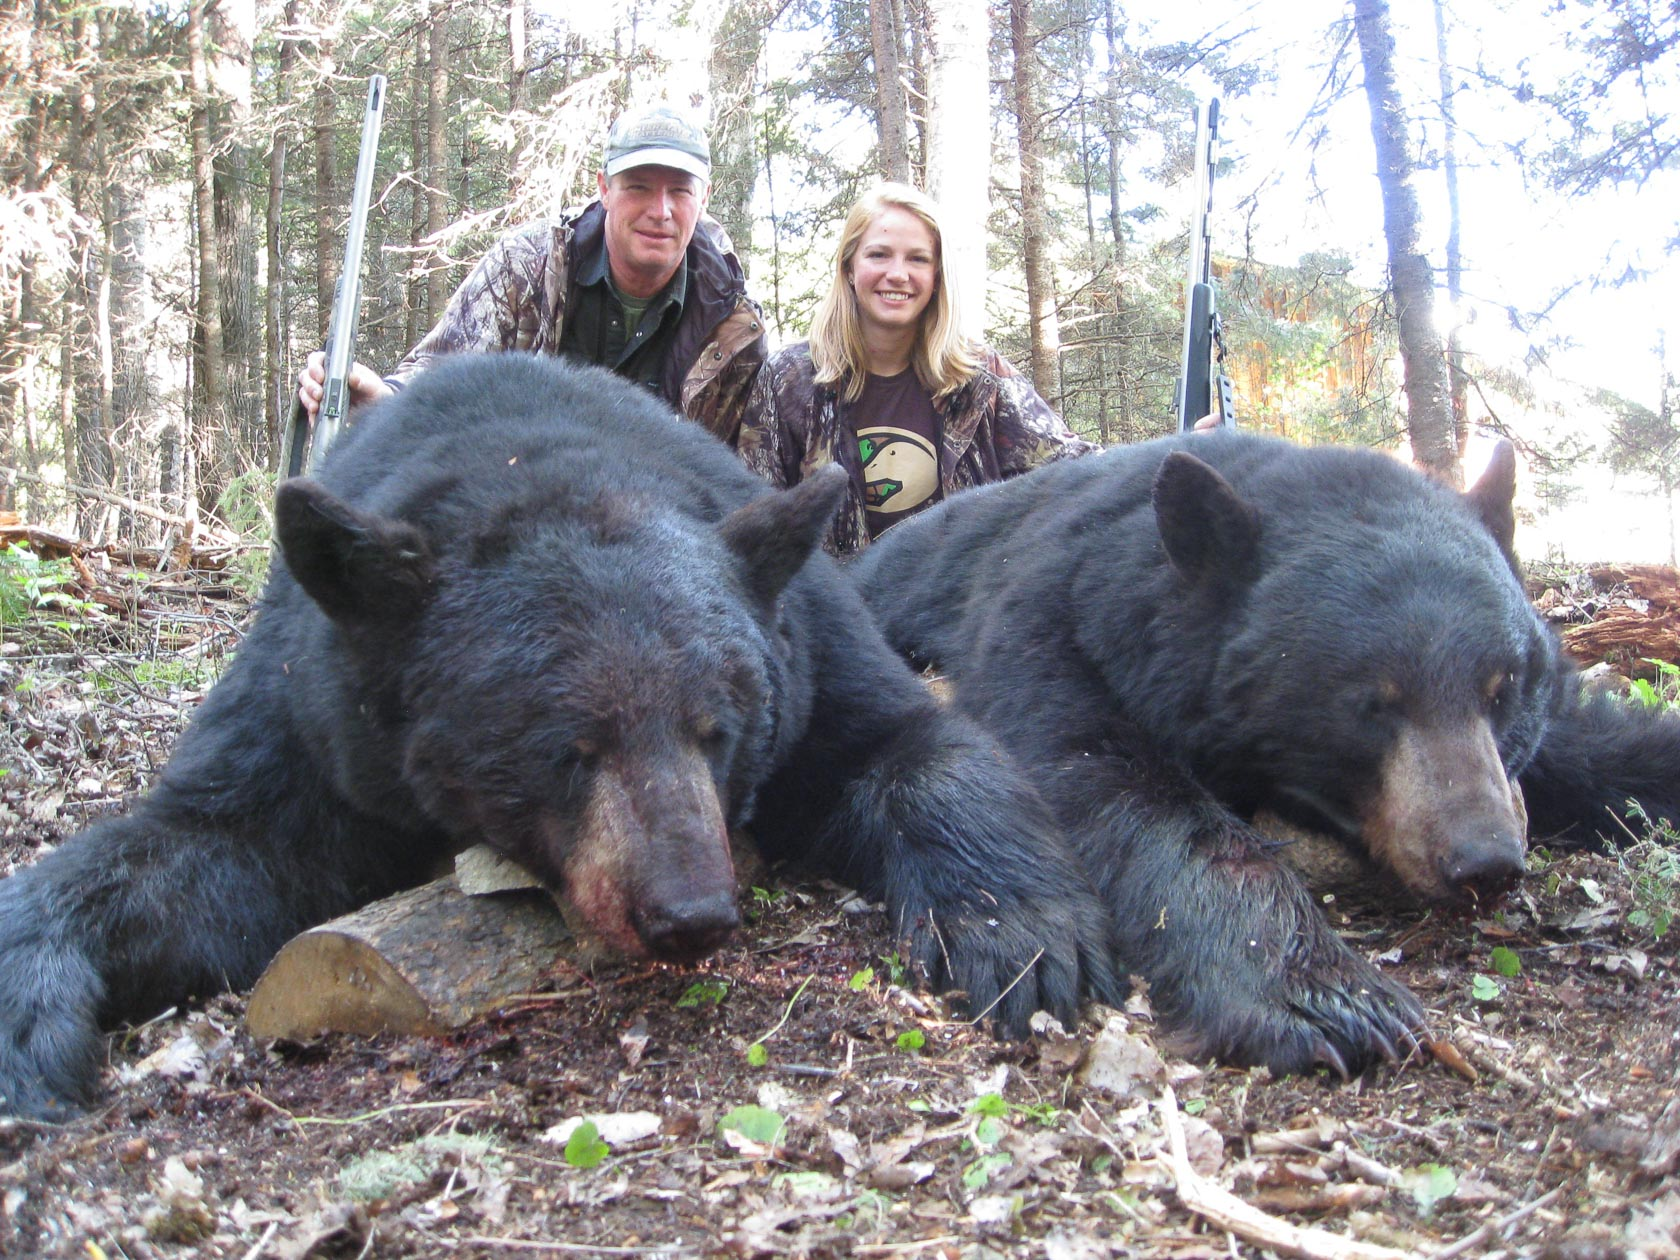 A man and a woman holding guns kneel behind two large black bears.